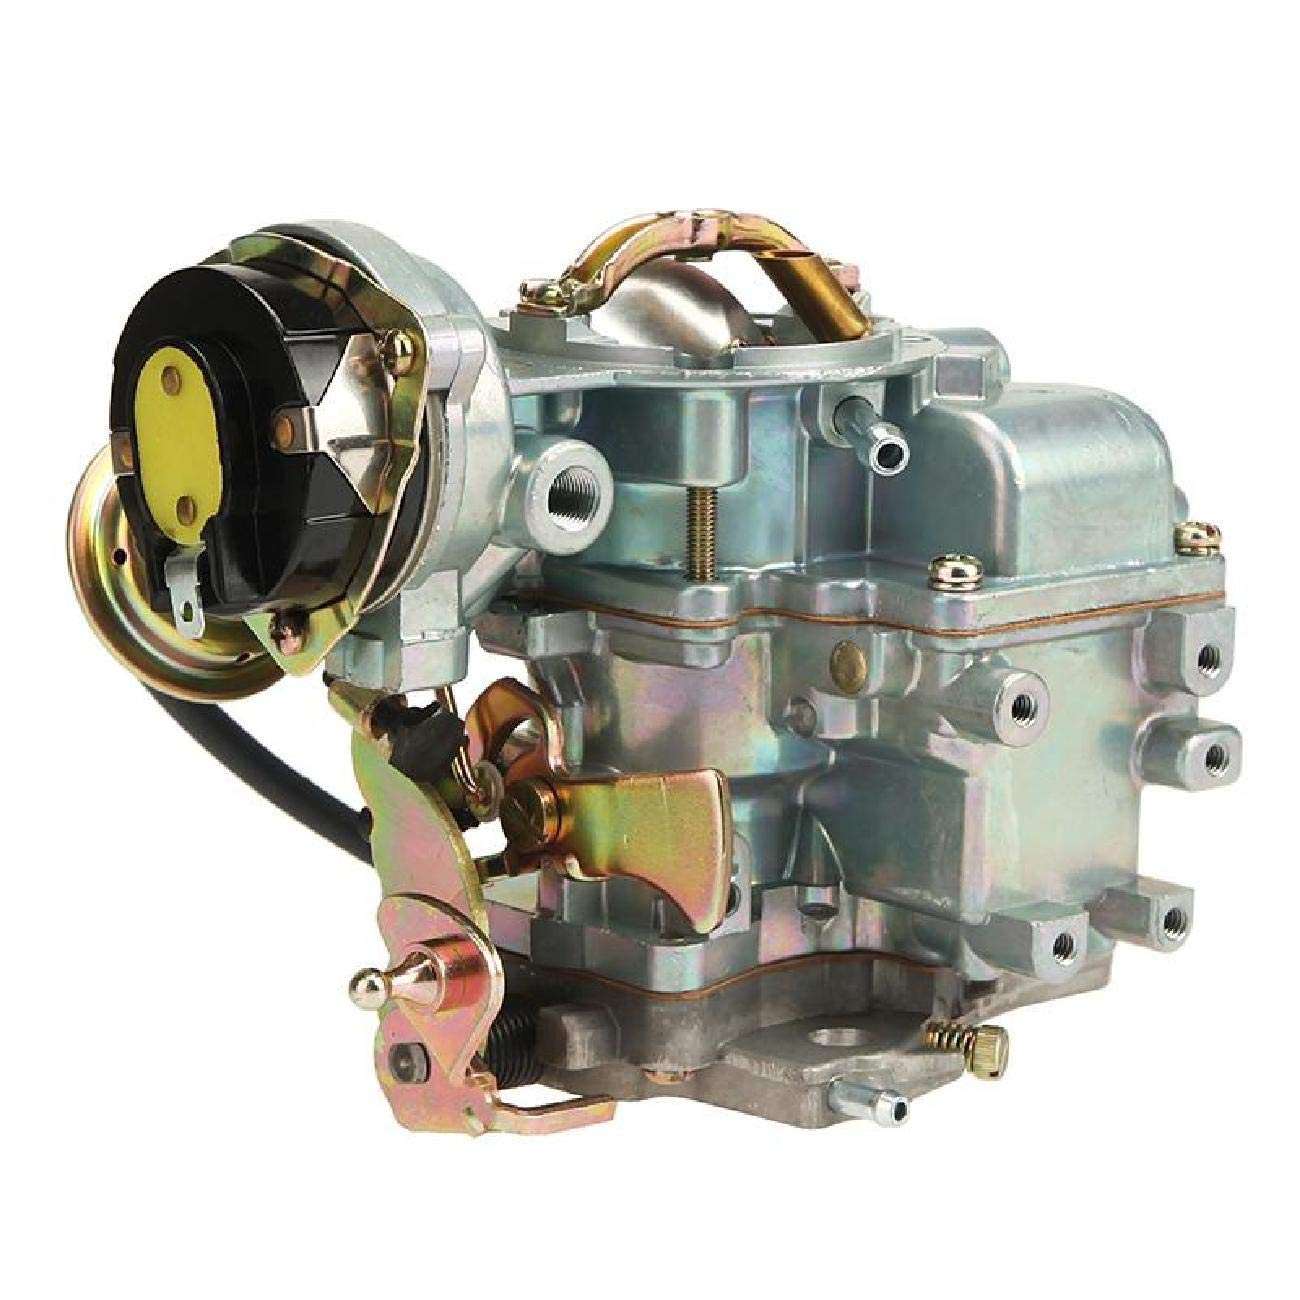 POWLAB Carburetor Type Carter for 1965-1985 Ford F300 YFA 1 Barrel Automatic Choke Ford 4.9L 300 Cu I6